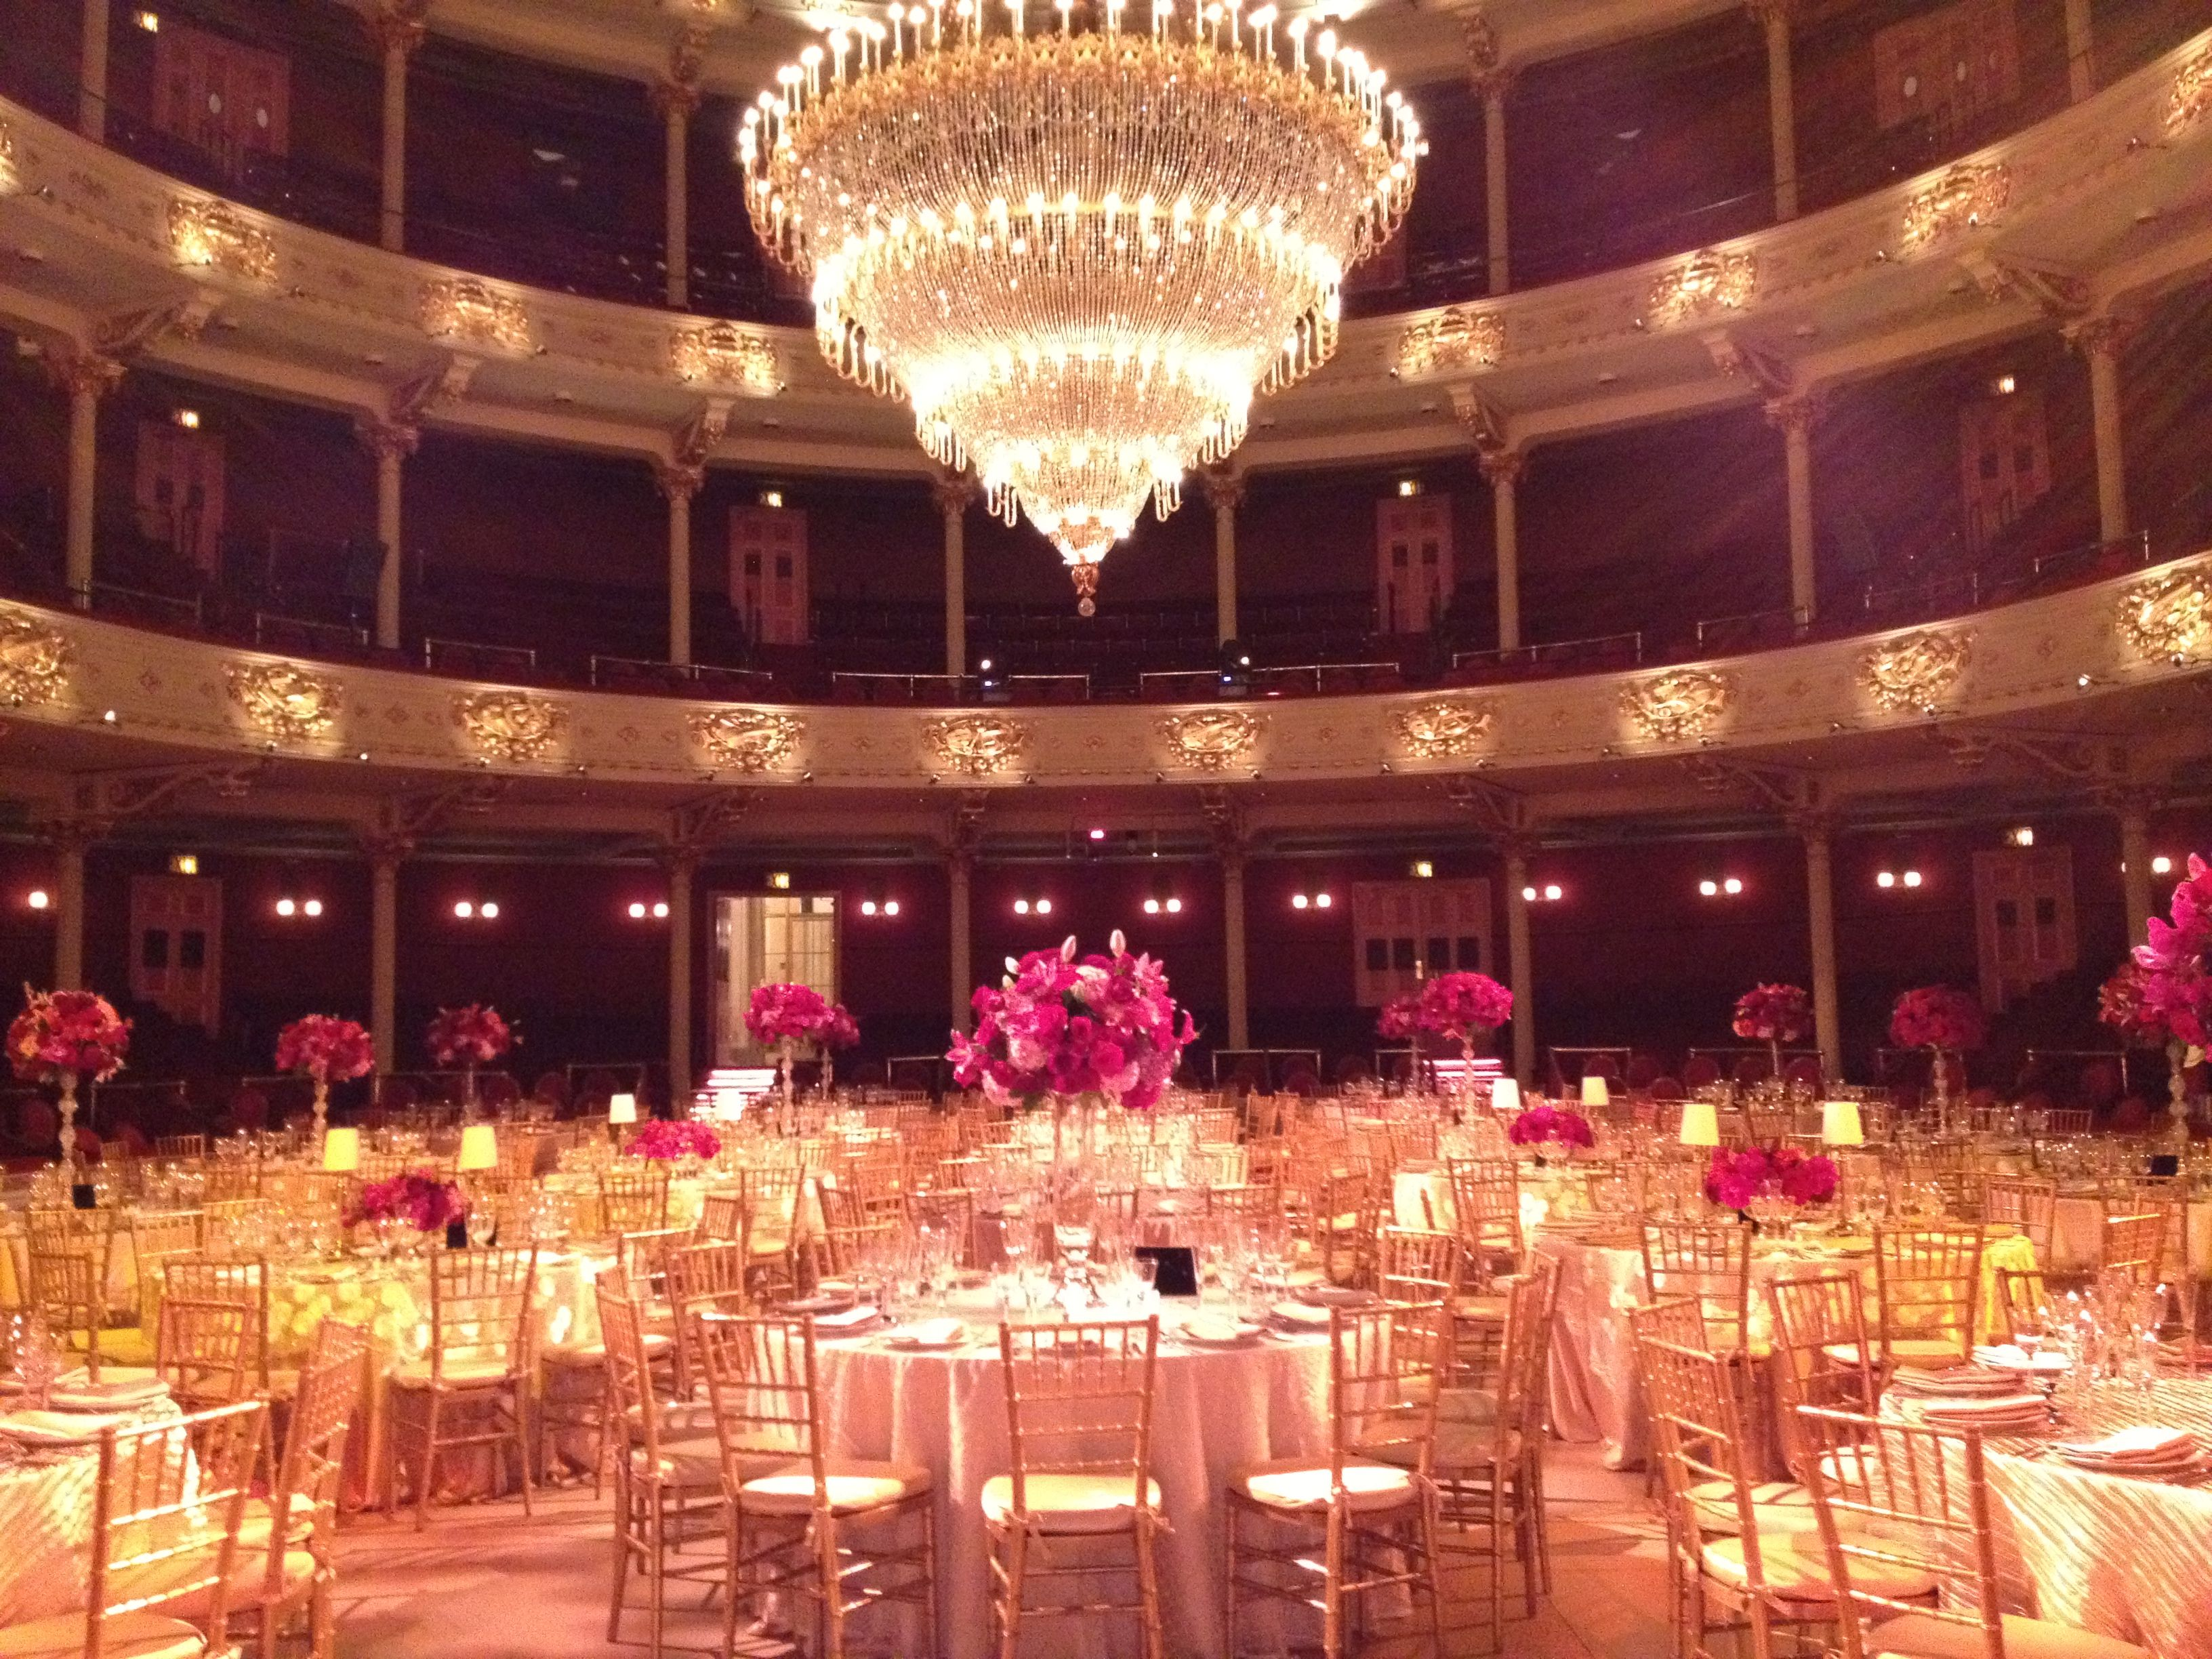 21 Best Academy Of Music Weddings Images On Pinterest Catering Philadelphia Wedding And